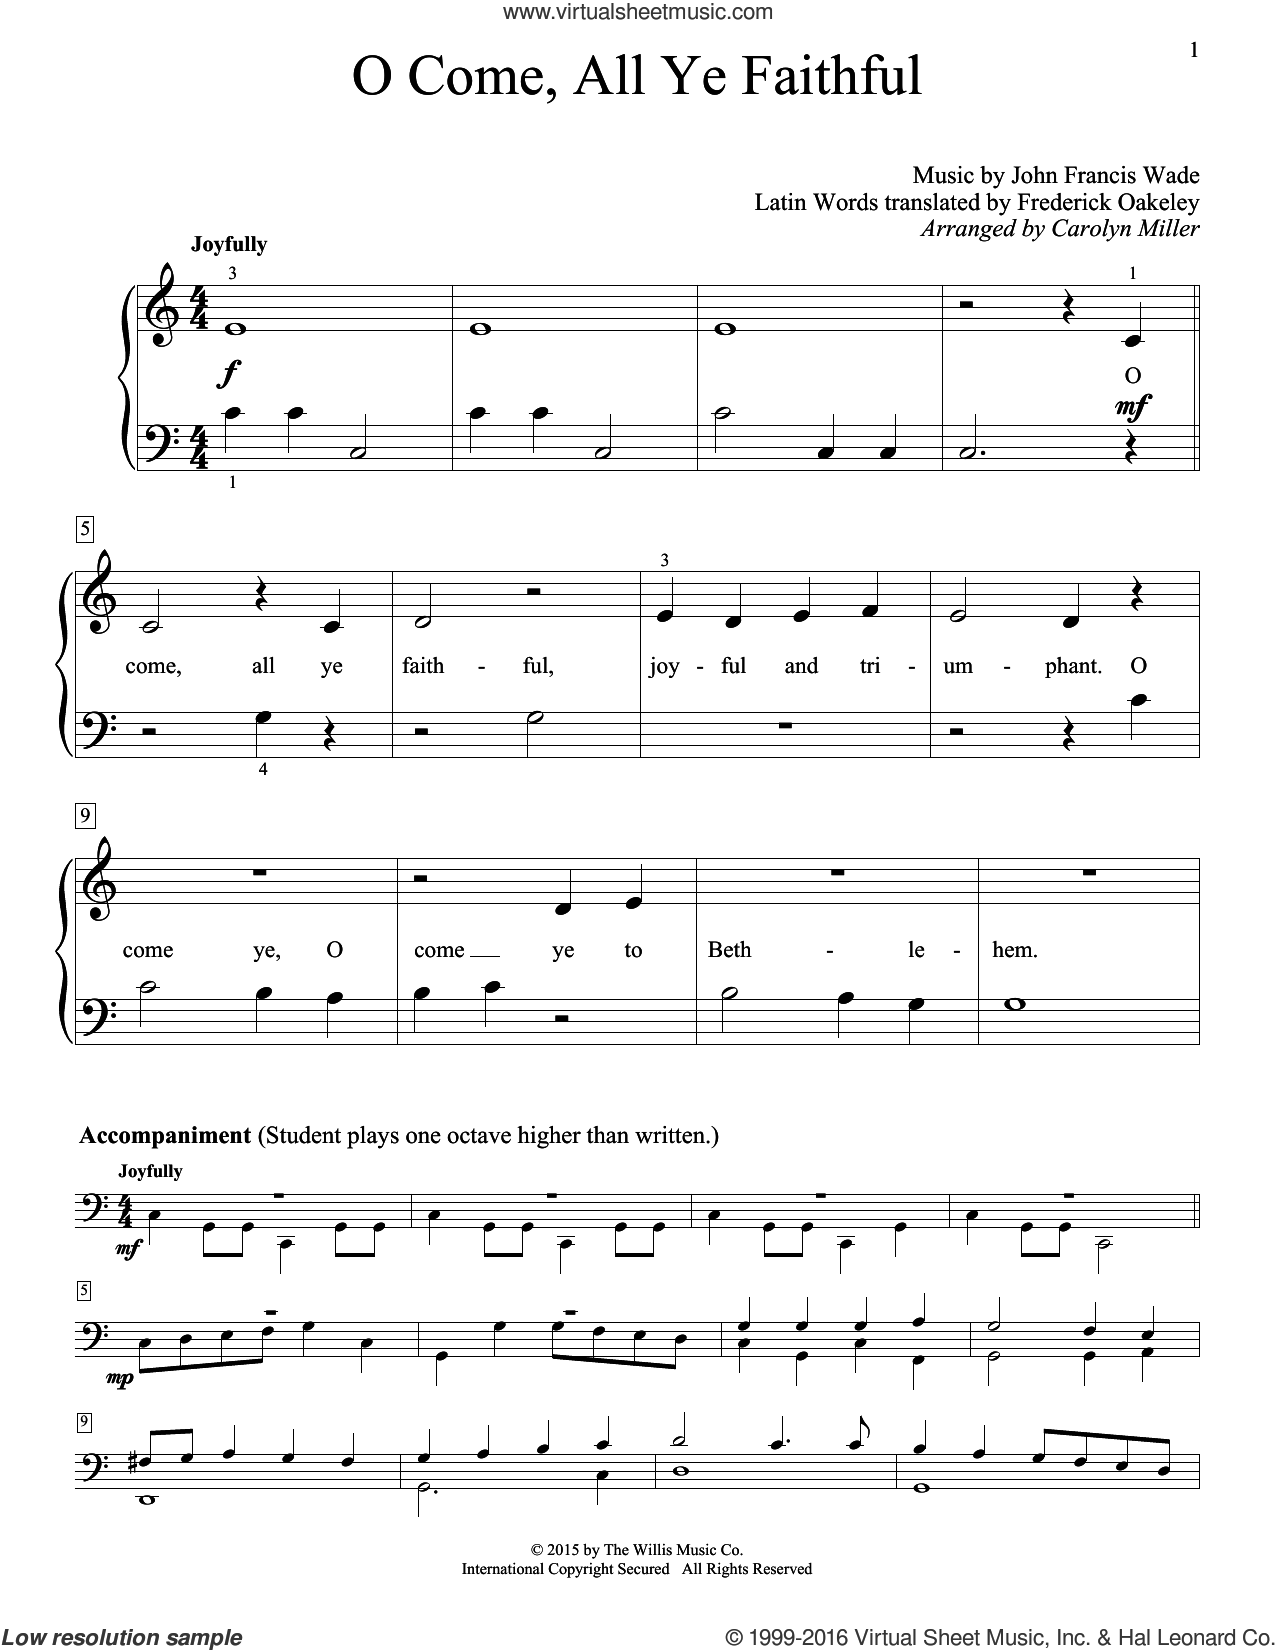 O Come, All Ye Faithful (Adeste Fideles) sheet music for piano solo (elementary) by John Francis Wade, Carolyn Miller and Frederick Oakeley (English), classical score, beginner piano (elementary). Score Image Preview.